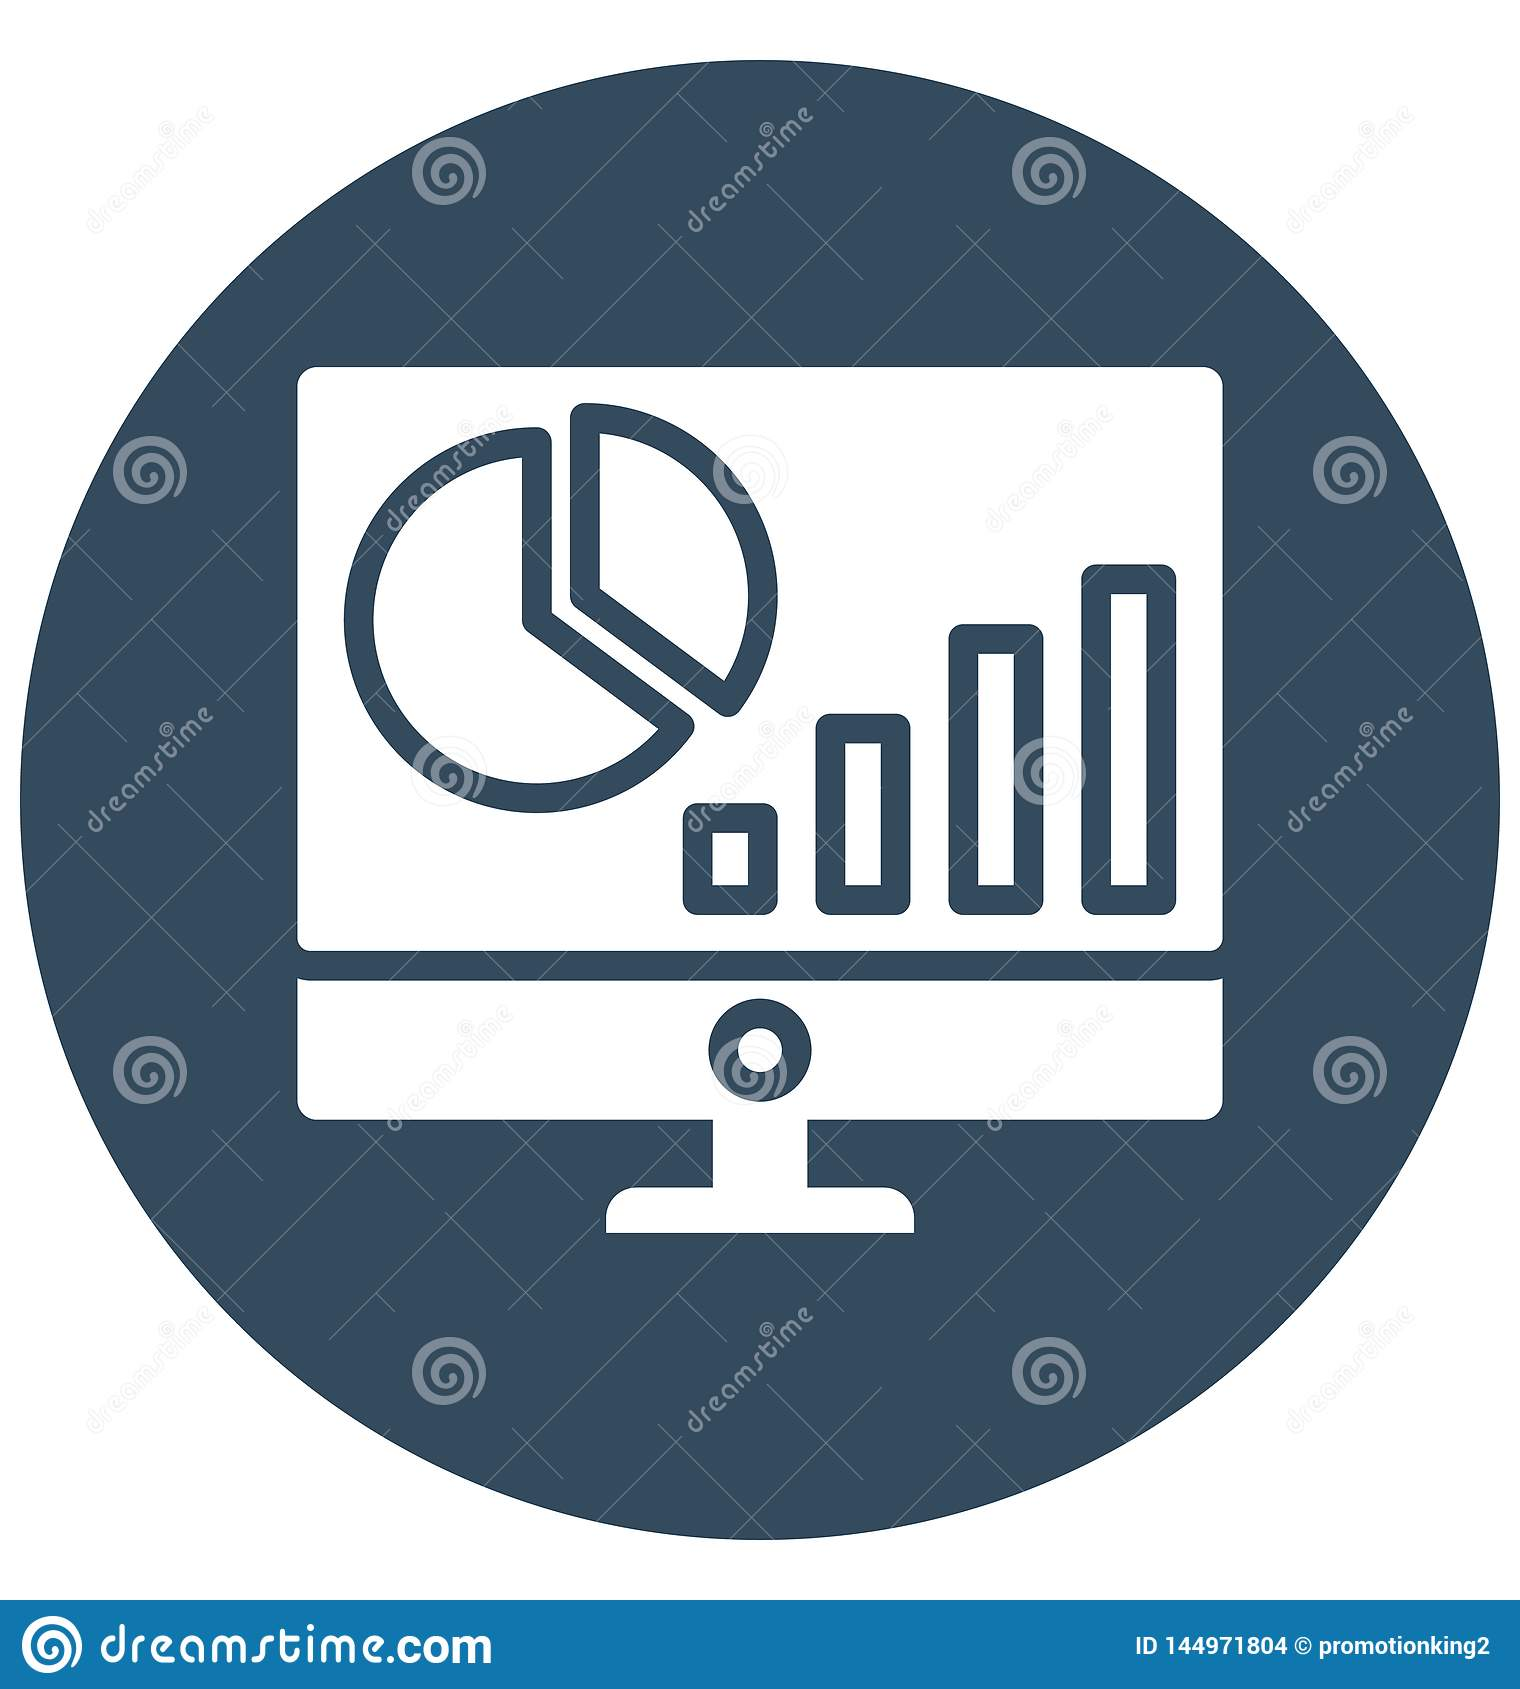 Busi Business evaluation Isolated Vector icon which can easilness evaluation Isolated Vector icon which can easily modify or edit